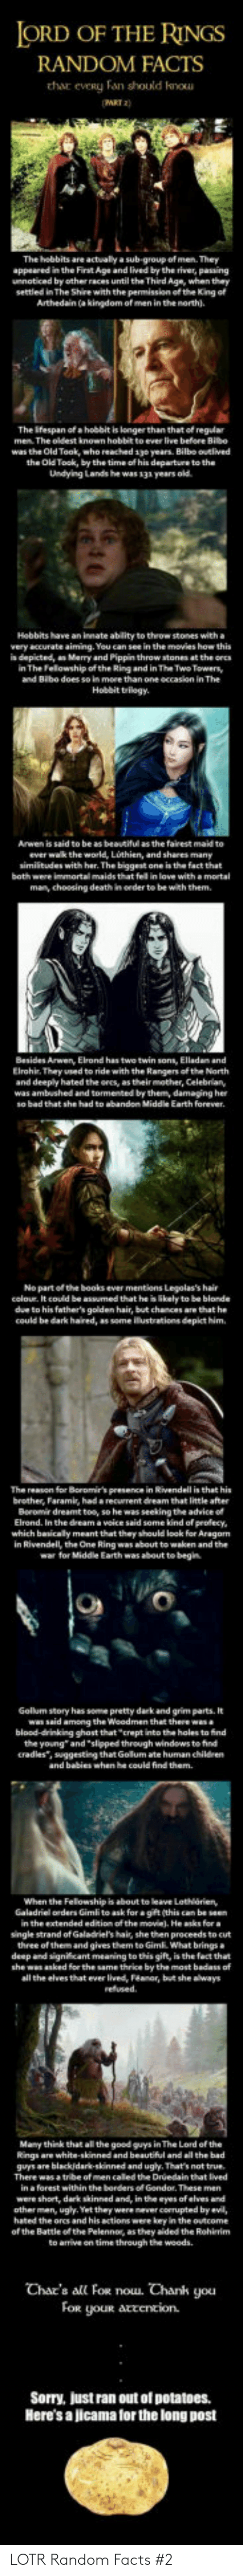 """tormented: ORD OF THE RINGS  RANDOM FACTS  thar  eveRy Fan should kou  AKT 2)  The hobbits are actually a sub-group of men. They  appeared in the First Age and lived by the river, pawing  unnoticed by other races until the Third Age, when they  settled in The Shire with the penmission of th. Kng of  Arthedain (a kingdom of men in the north).  The ifespan of a hobbit is longerthan that of regular  The oldest known  was the Old Took, who reached 1yo years. Bilbo ouelived  the Old Took, by the time of his departure to the  Undying Lands he was 13a years old  Hebbits have an innate ablity to theow stones with a  very accurate aiming. You can see in the movies how this  s depicted, an Merry and Pippin throw stones at the ores  n The Felowship of the Ring and in The Two Towersy  and Bibe does so in  Hobbit trilogy.  to be as beautiful  as the fairest maid to  ever wak the world, Lothien, and shares many  similitudes with her. The biggest one is the fact that  both were immortal maids that fel in love with amortal  man, choosing death in oeder to be with them.  Arwen, Elrond has  Elrohir They used to ride with the Rangers of the North  and deeply hated the orcs, as their mother, Celebrian,  was ambushed and tormented by them, damaging her  Earth forever  No partofthe books ever mentiens Legolas's hair  celoue. It could be assumed that he is likely to be blonde  due to his father's golden hair, but chances are that he  could be dark haired, as some ilustrations depict him  The reason for Boromir's presence in Rivendell is that his  brother, Faramis, had a recurrent dream that little after  Beromir dreamt toe, so he was seeking the advice o  Elrond. In the dream a veice said some kind ef profecy  which basicaly meant that they should look for Aragan  in Rivendell, the One Ring was about to waken and the  war for Middle Earth was about te begin  Gollum story has some pretty dark and grim parts. It  among the  blood-drinking ghost that crept into the holes to find  the young"""" """